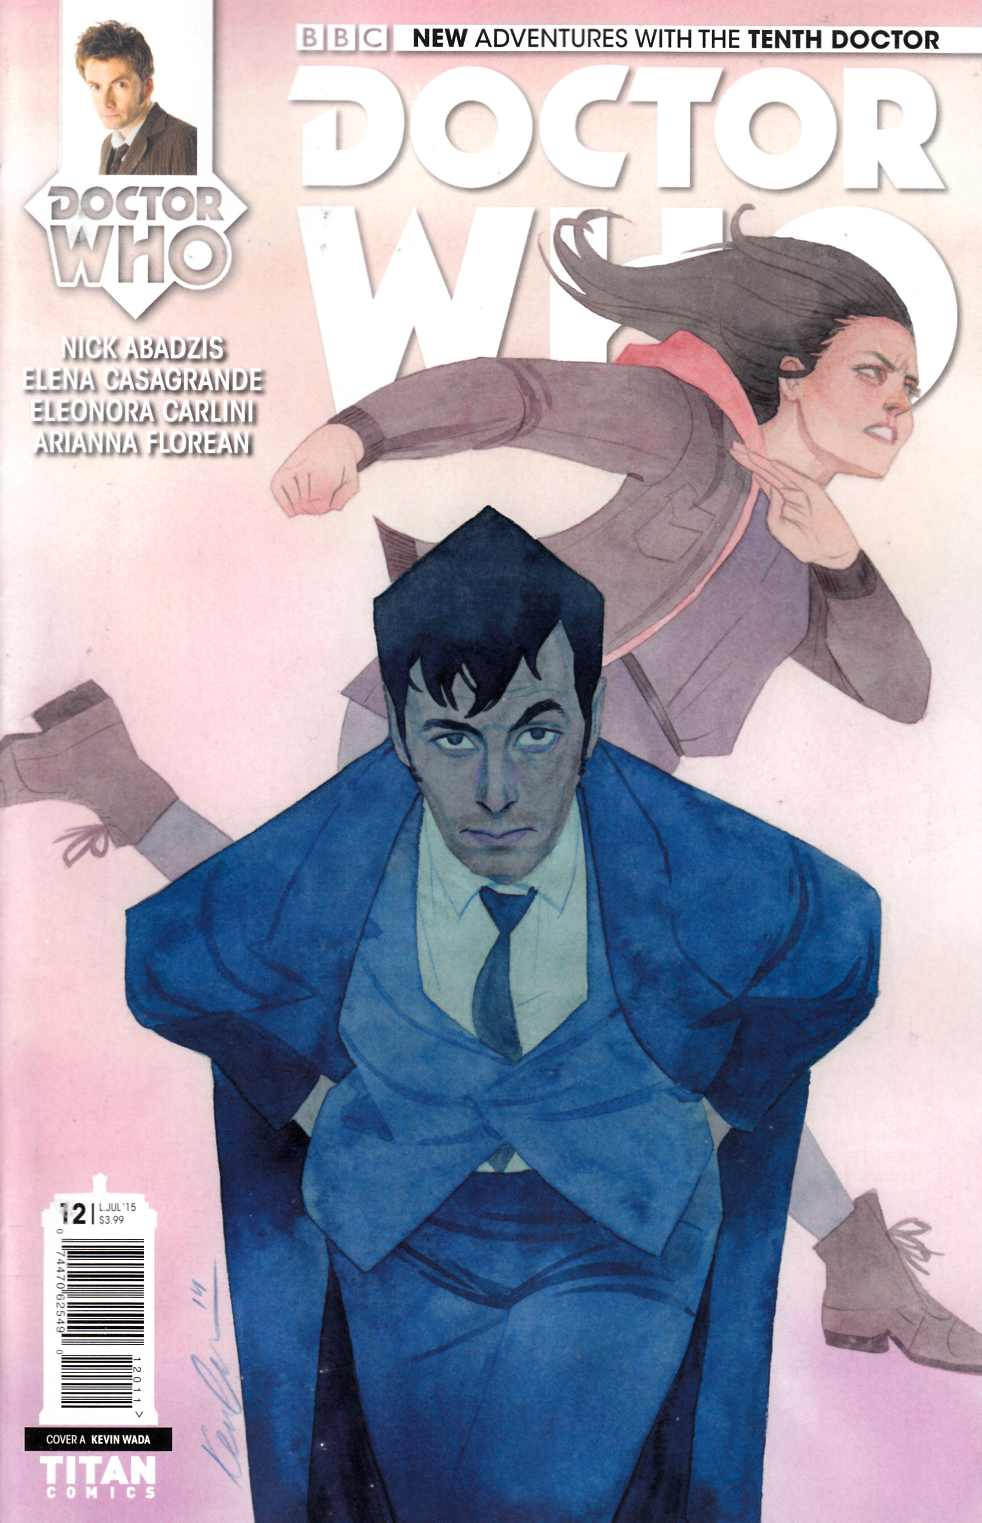 Doctor Who 10th Doctor #12 [Titan Comic] THUMBNAIL